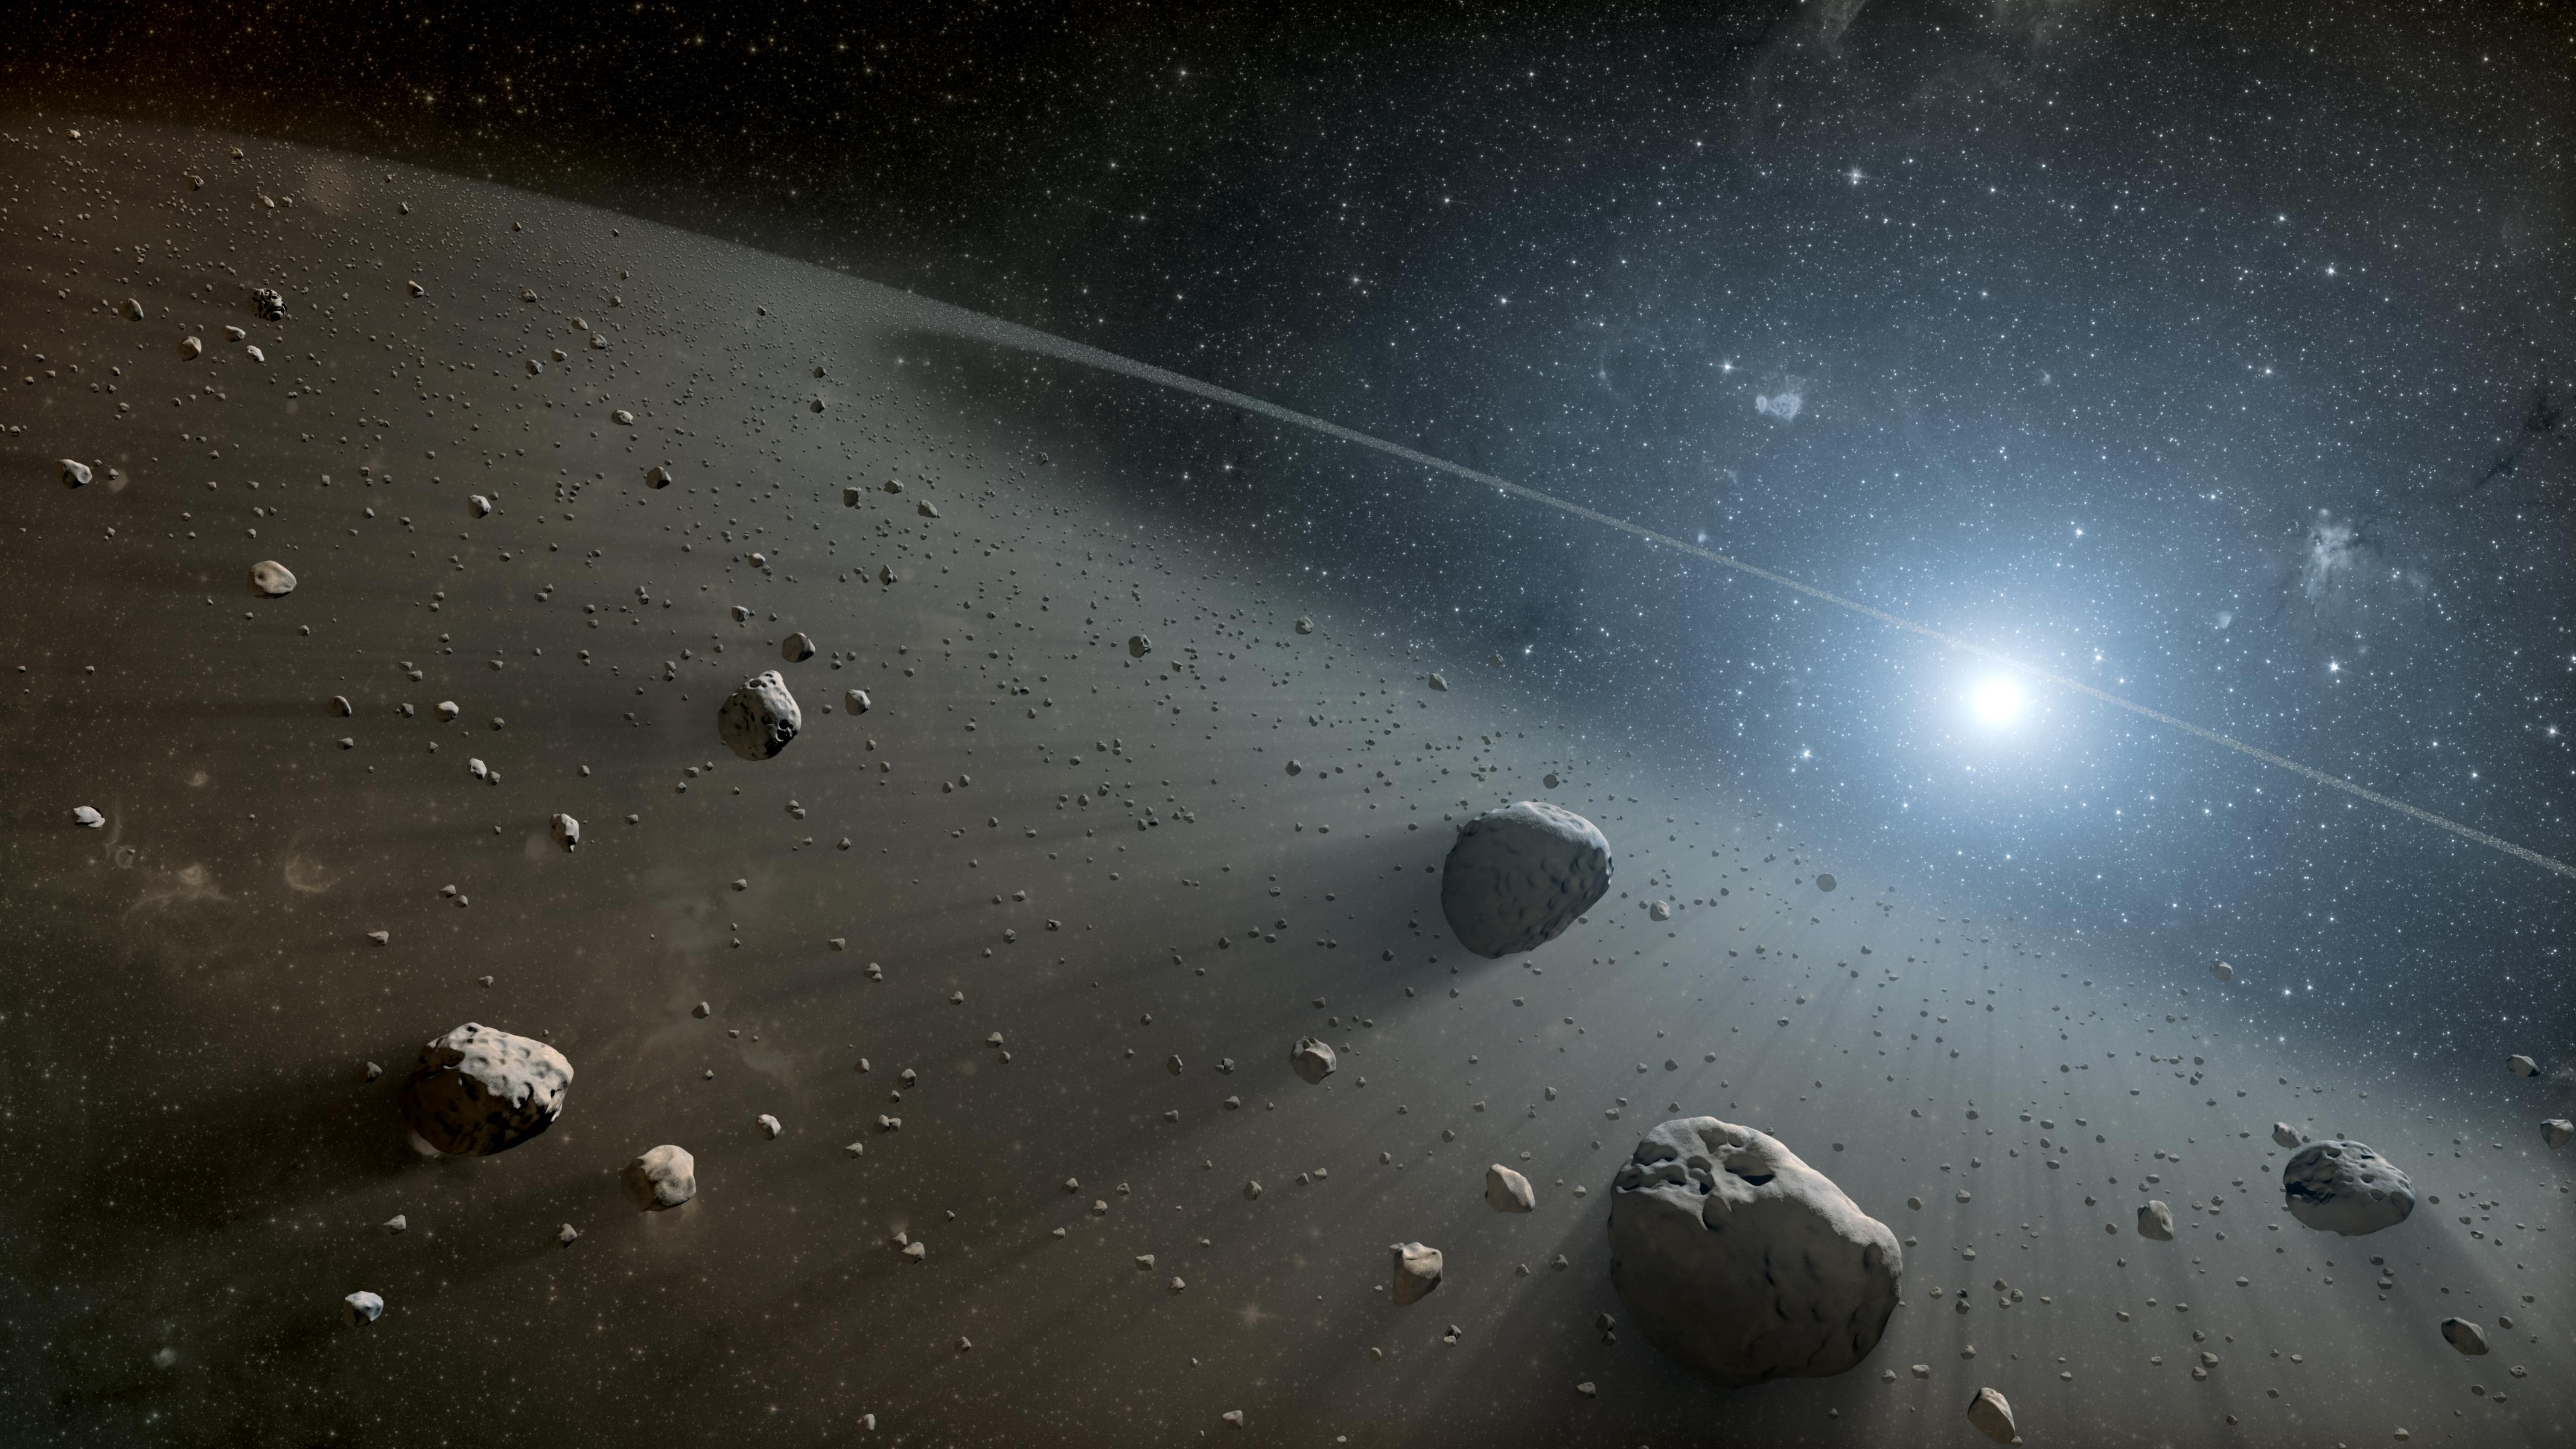 Artist's concept illustrates an asteroid belt around the bright star Vega. Image credit: NASA/JPL-Caltech